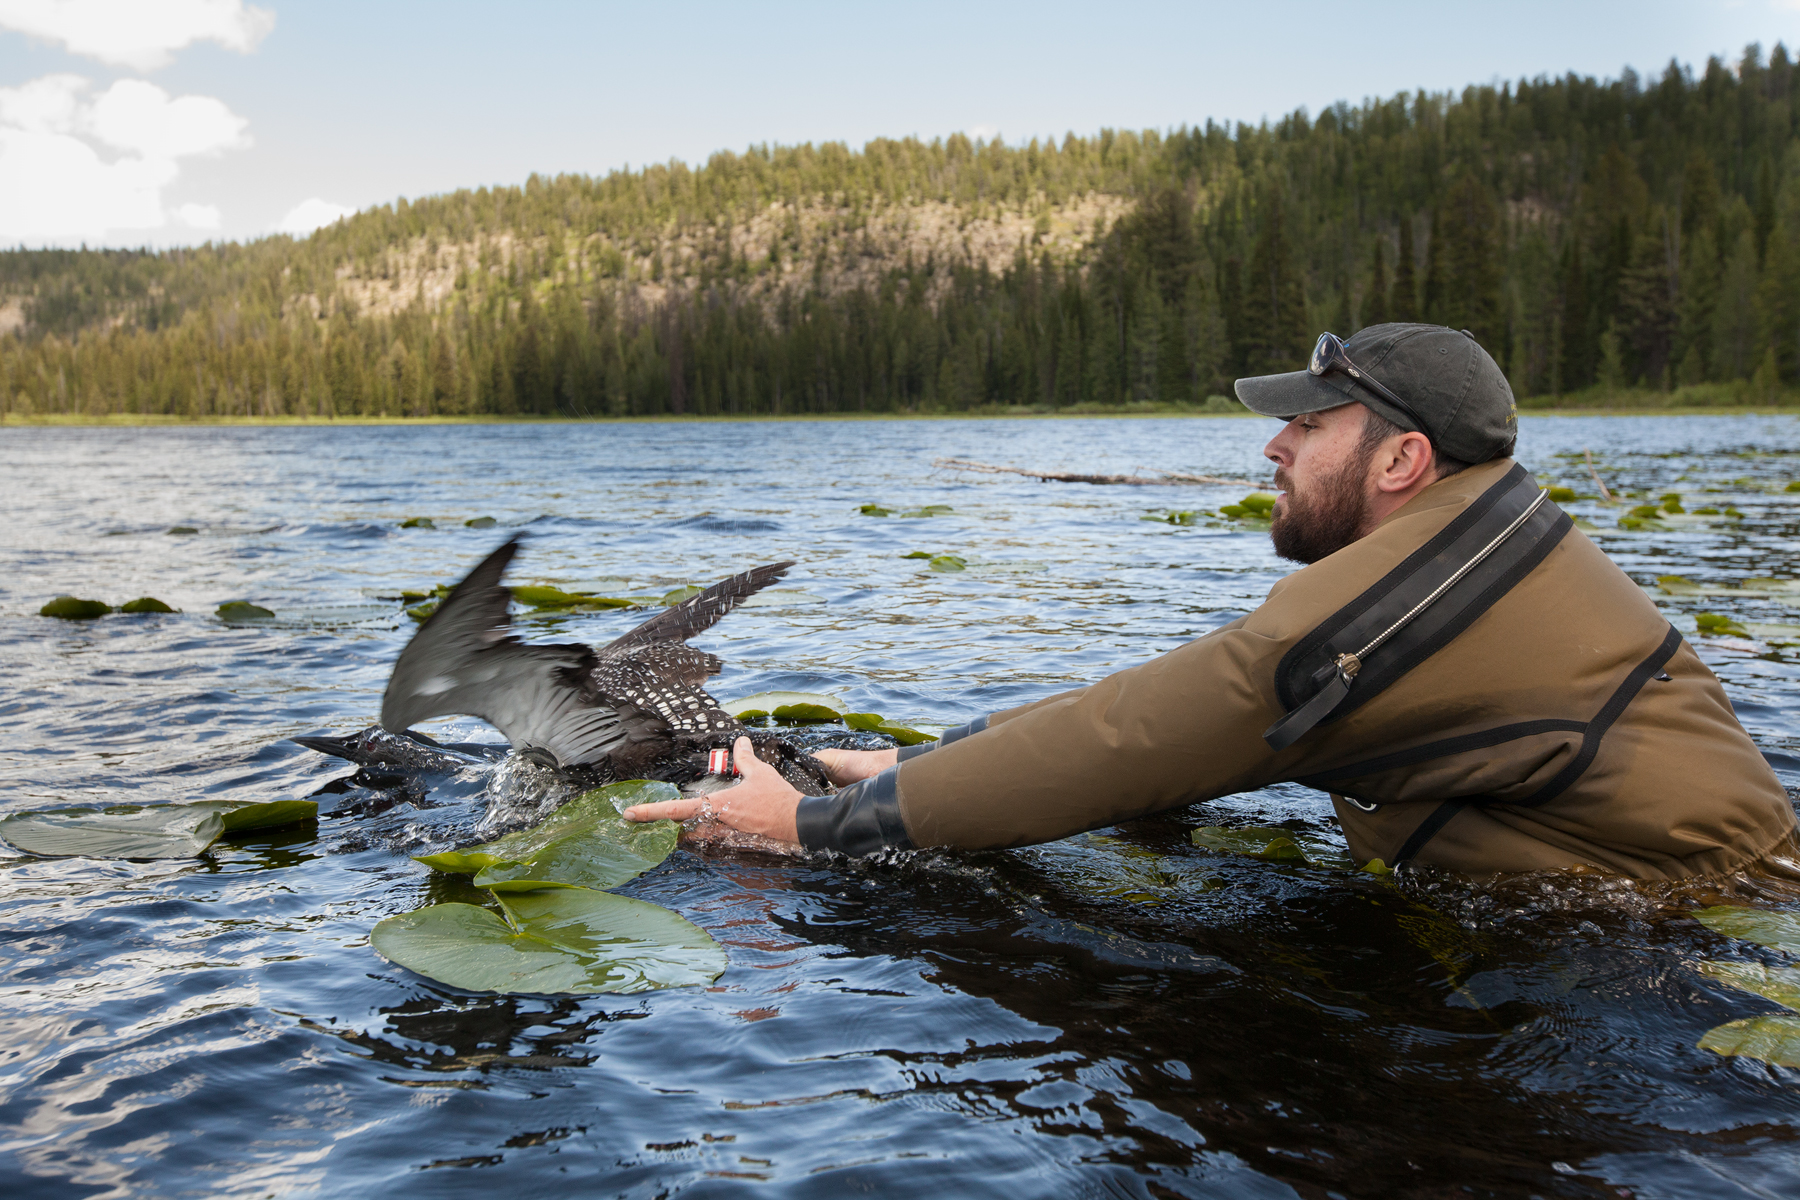 Chris Persico releases a Common Loon back into the wild, where it quickly returned to its mate. From capture to release, the entire procedure only takes around twenty minutes.   Image ©Connor Stefanison